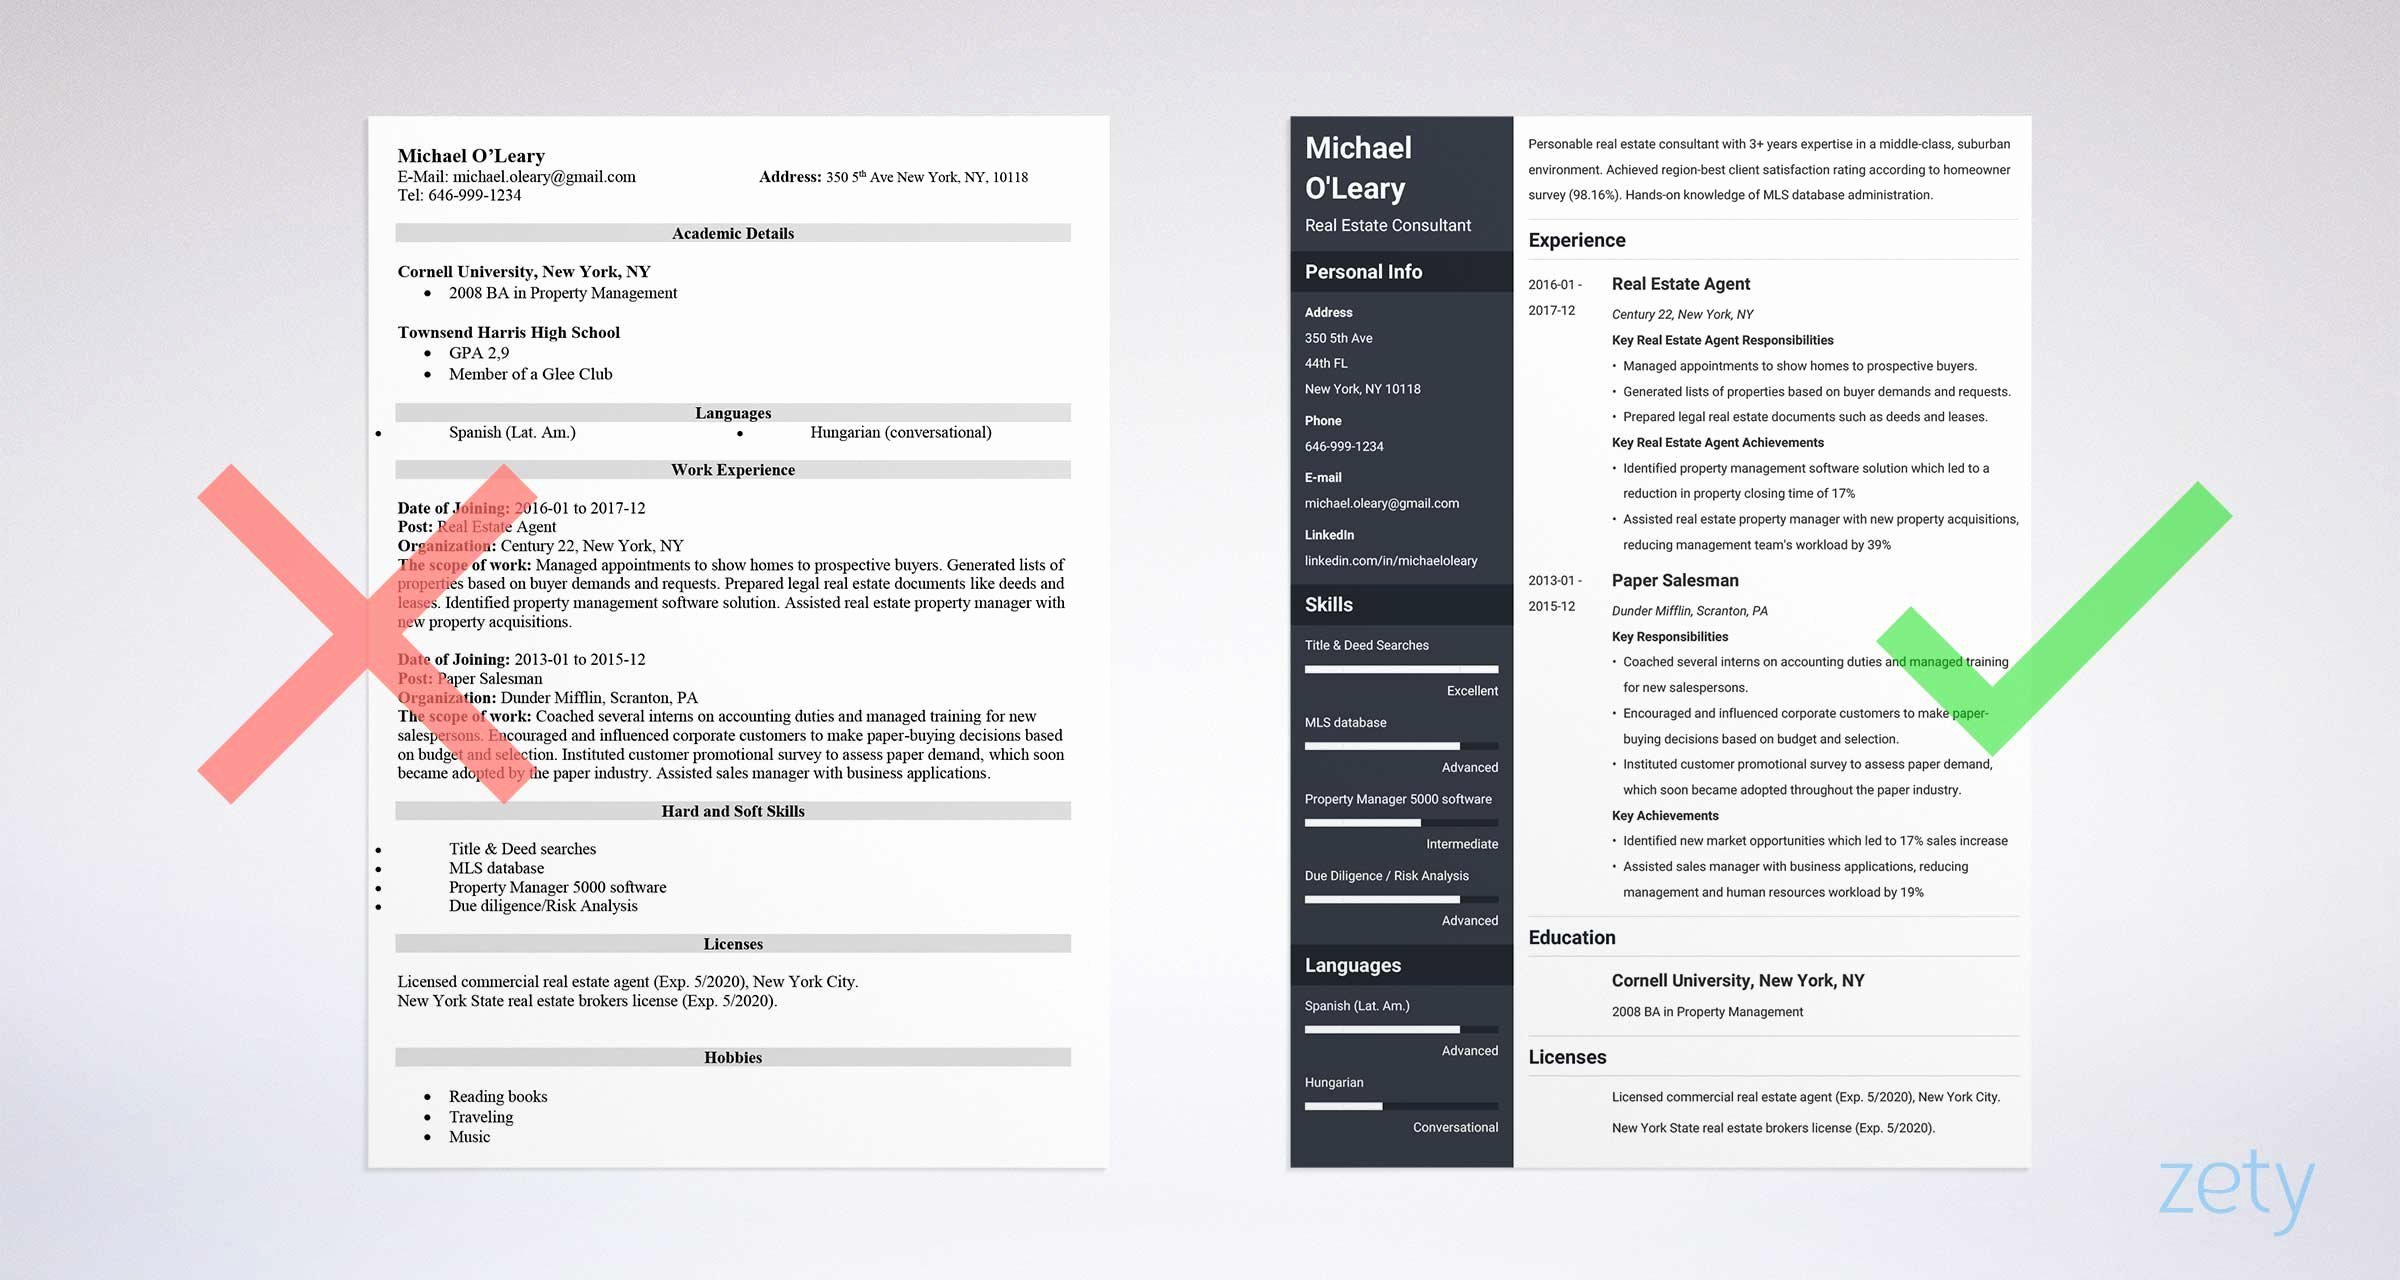 Real Estate Resume Templates Best Of Real Estate Resume Sample & Plete Guide [20 Examples]